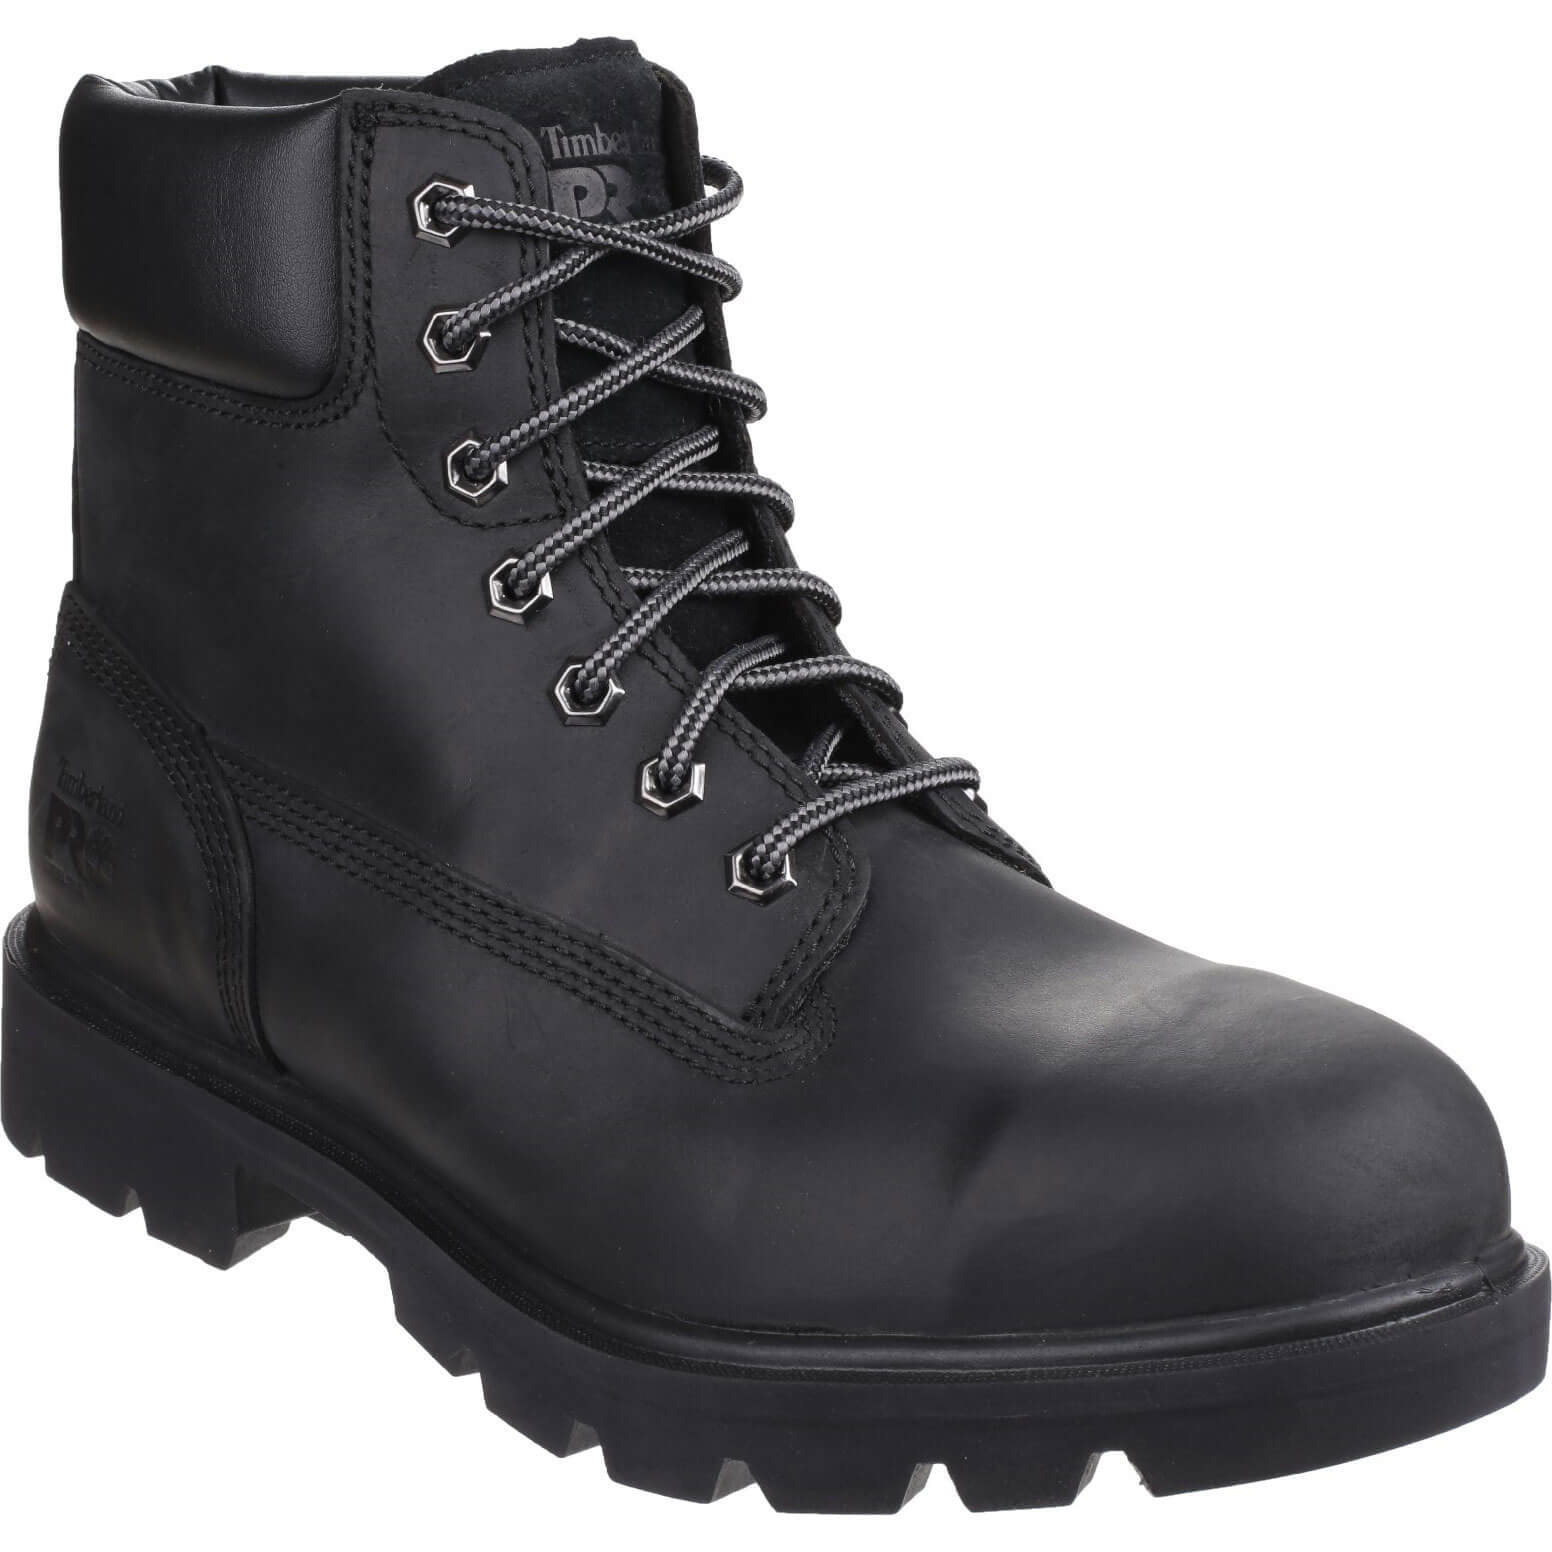 Image of Timberland Pro Mens Saw Horse Safety Boots Black Size 7